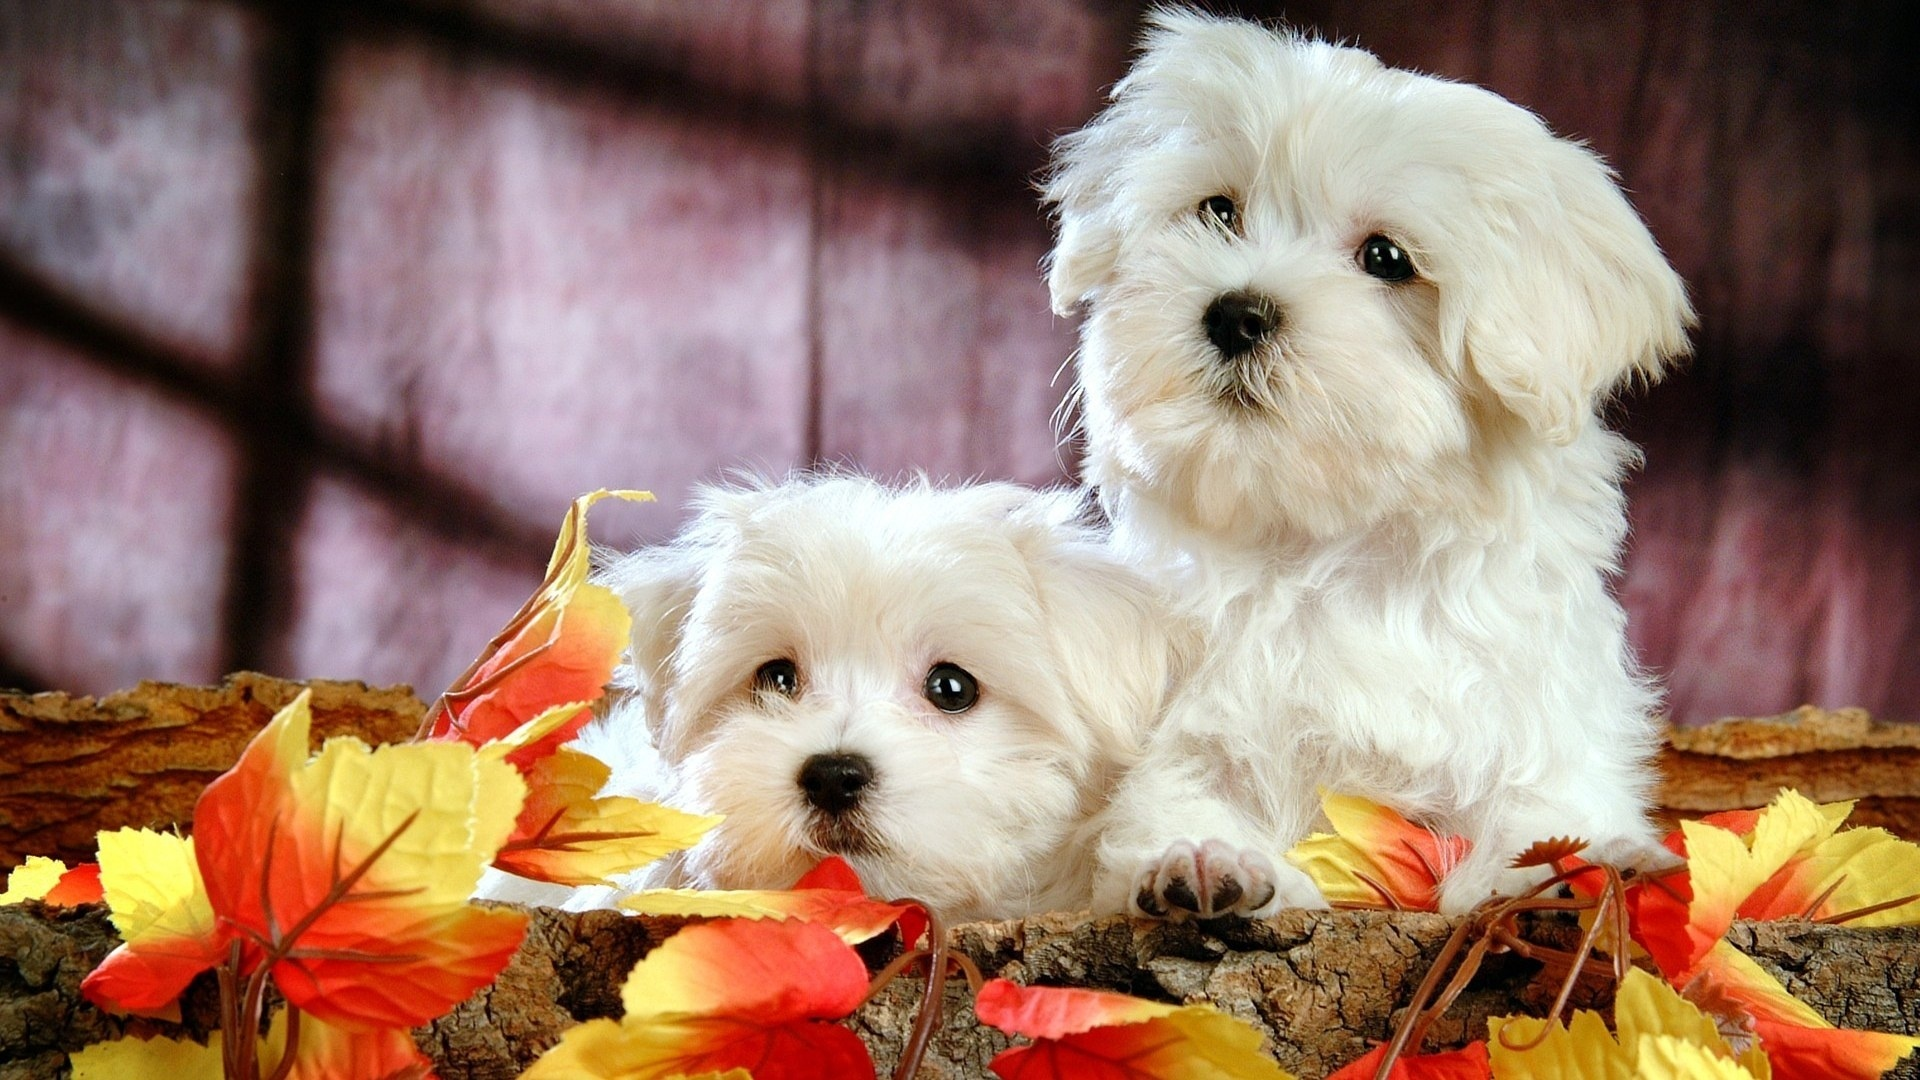 cute bichon puppies hd desktop wallpaper hd desktop wallpaper